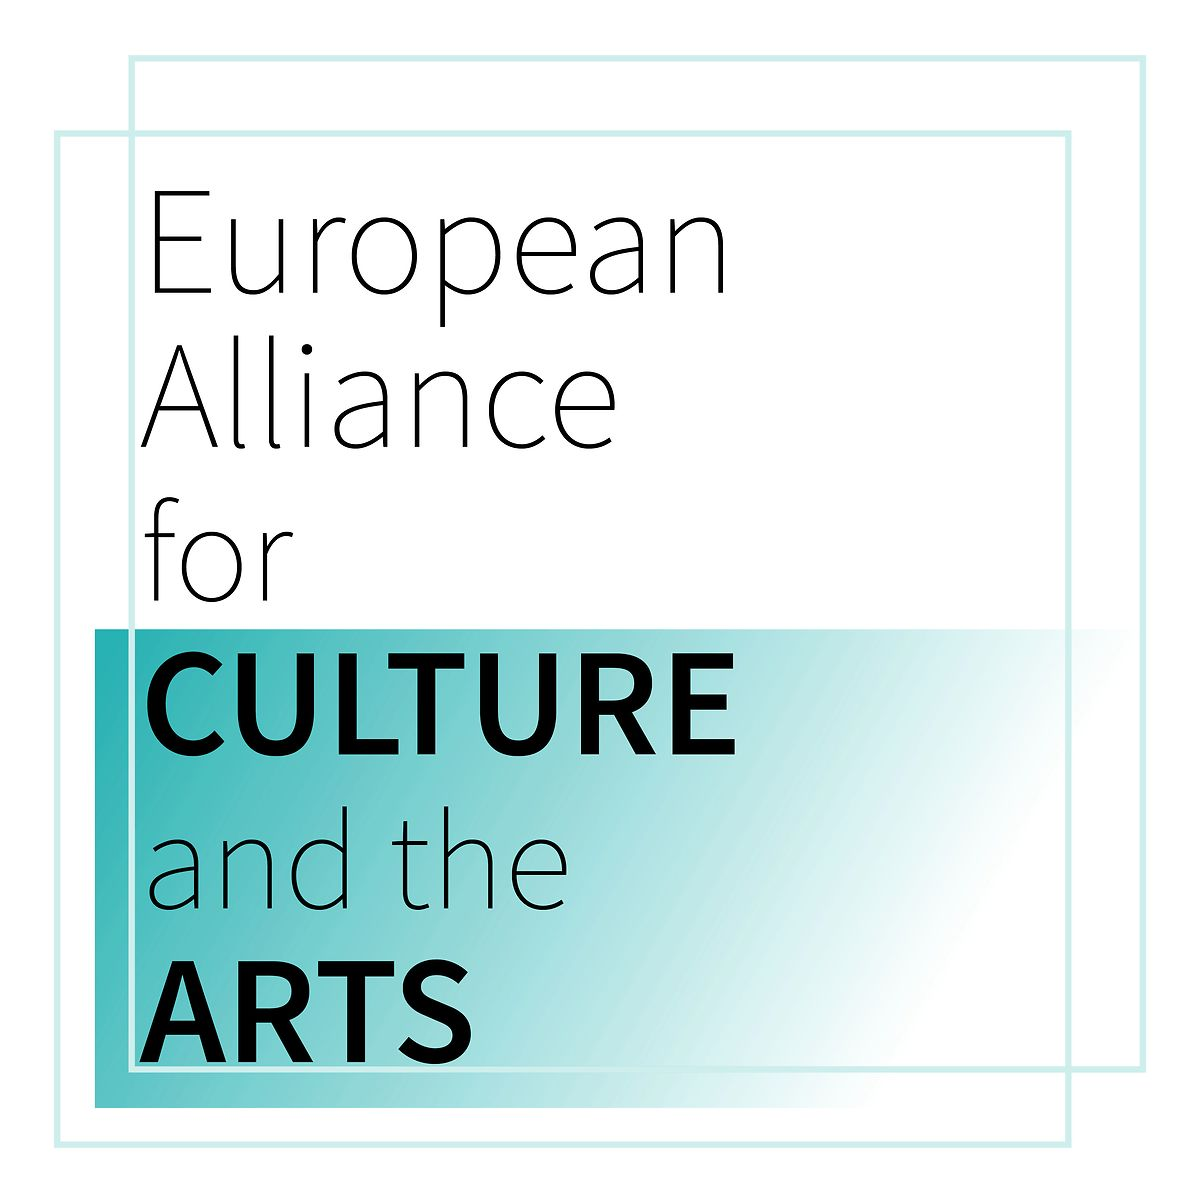 Culture and art: a selection of news